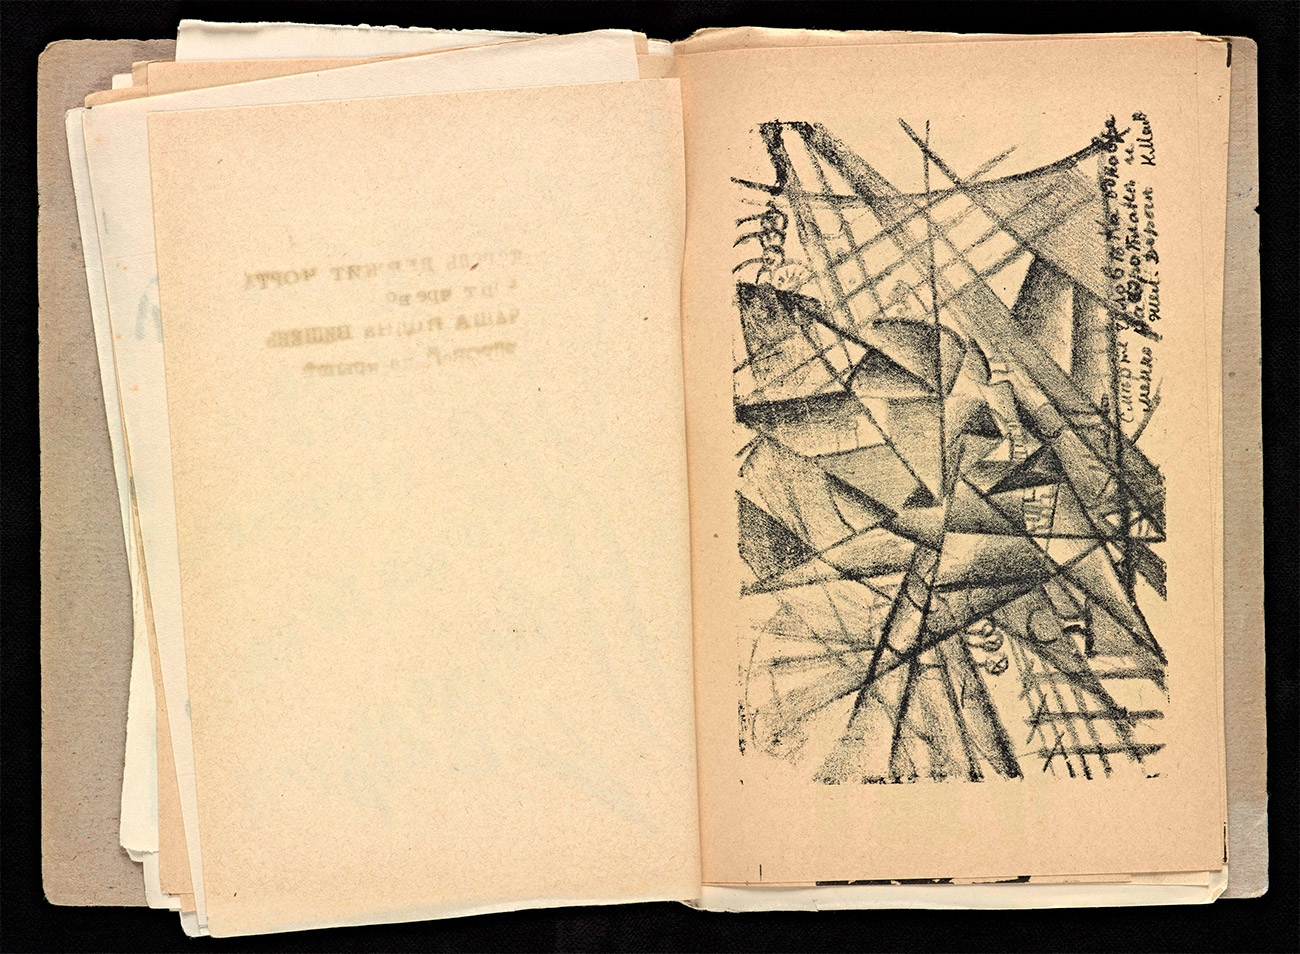 Book of yellowed pages open to a spred showing a lithograph of an abstracted, dynamic city scene